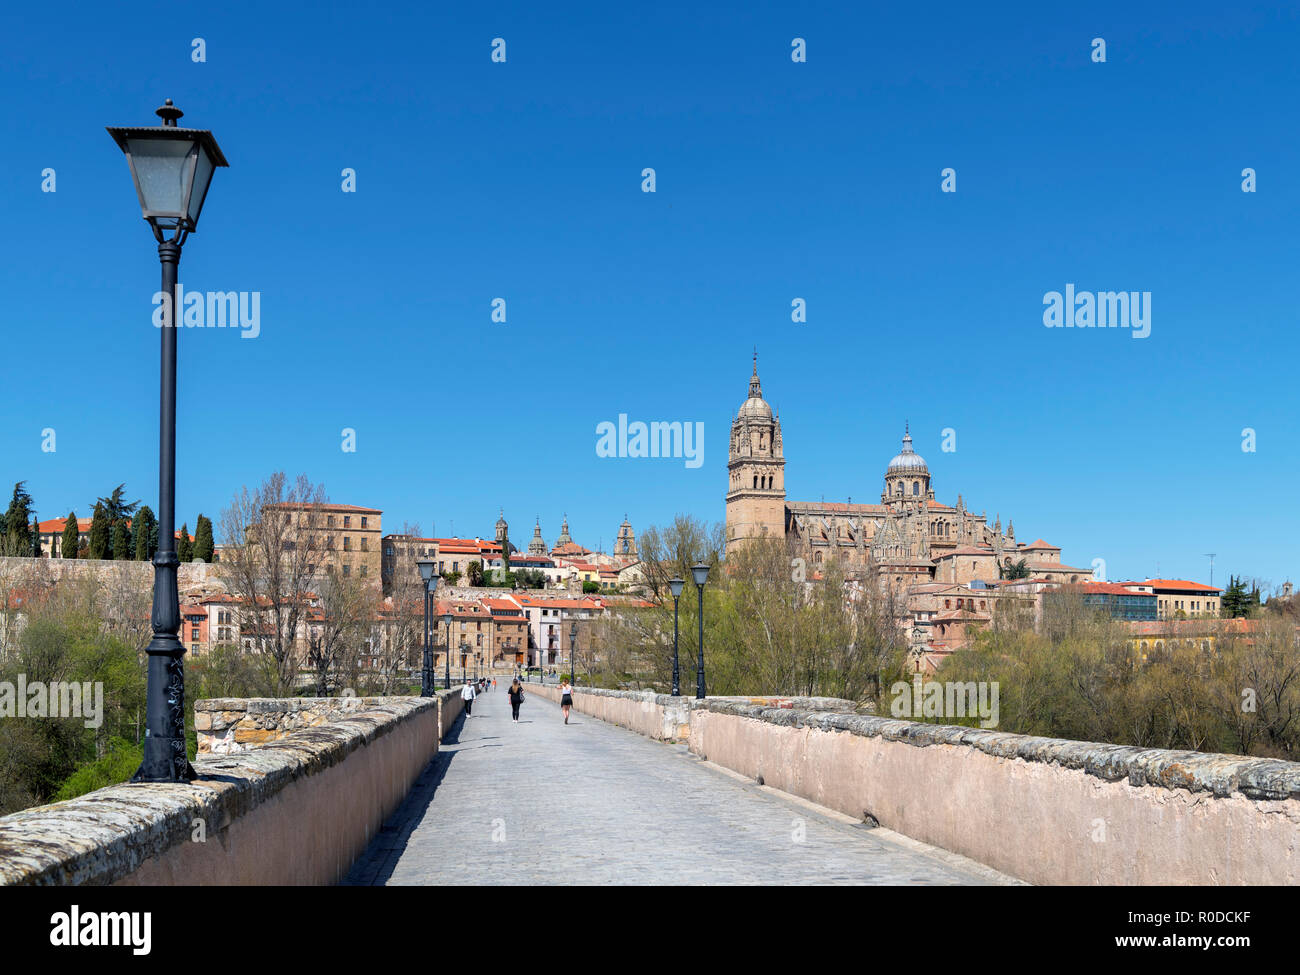 View towards the old town and cathedrals from the Puente Romano (Roman Bridge), Salamanca, Castilla y Leon, Spain - Stock Image